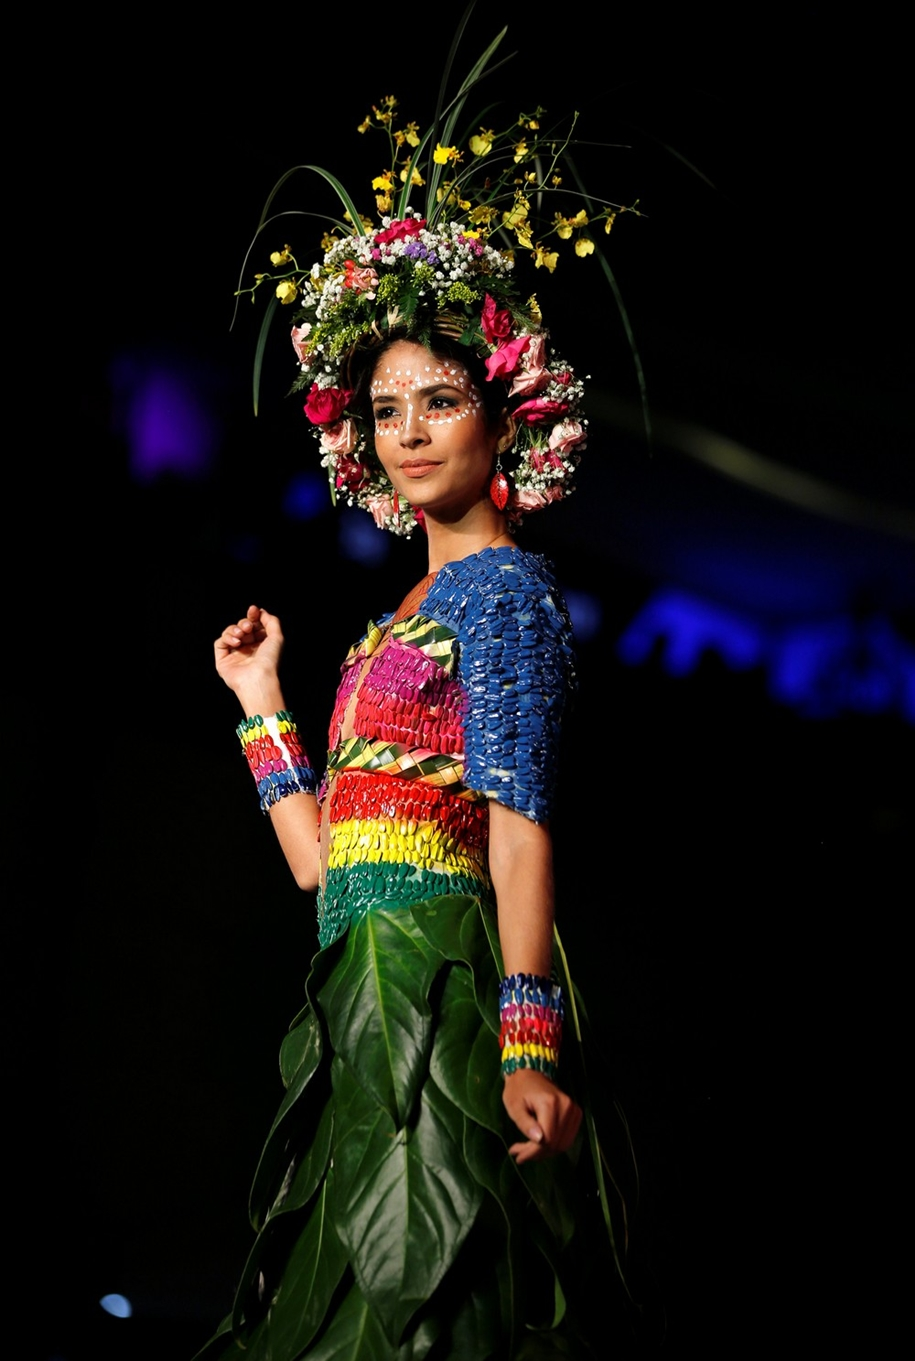 colorful-outfits-from-plants-on-biofashion-show-02